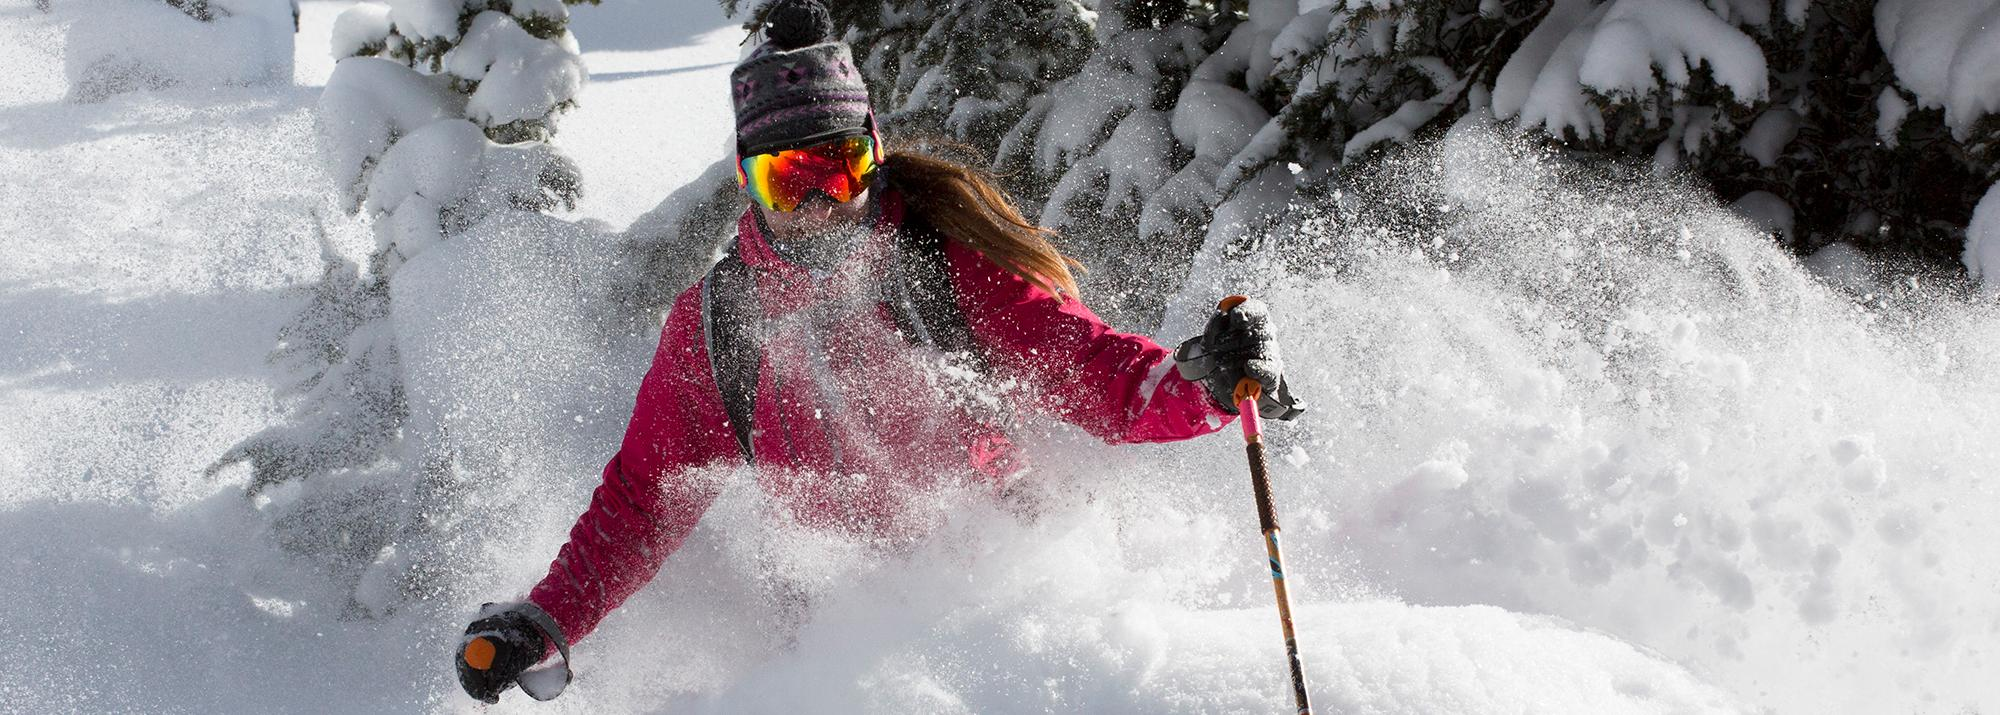 Teton Backcountry Skiing – Photo: David Stubbs